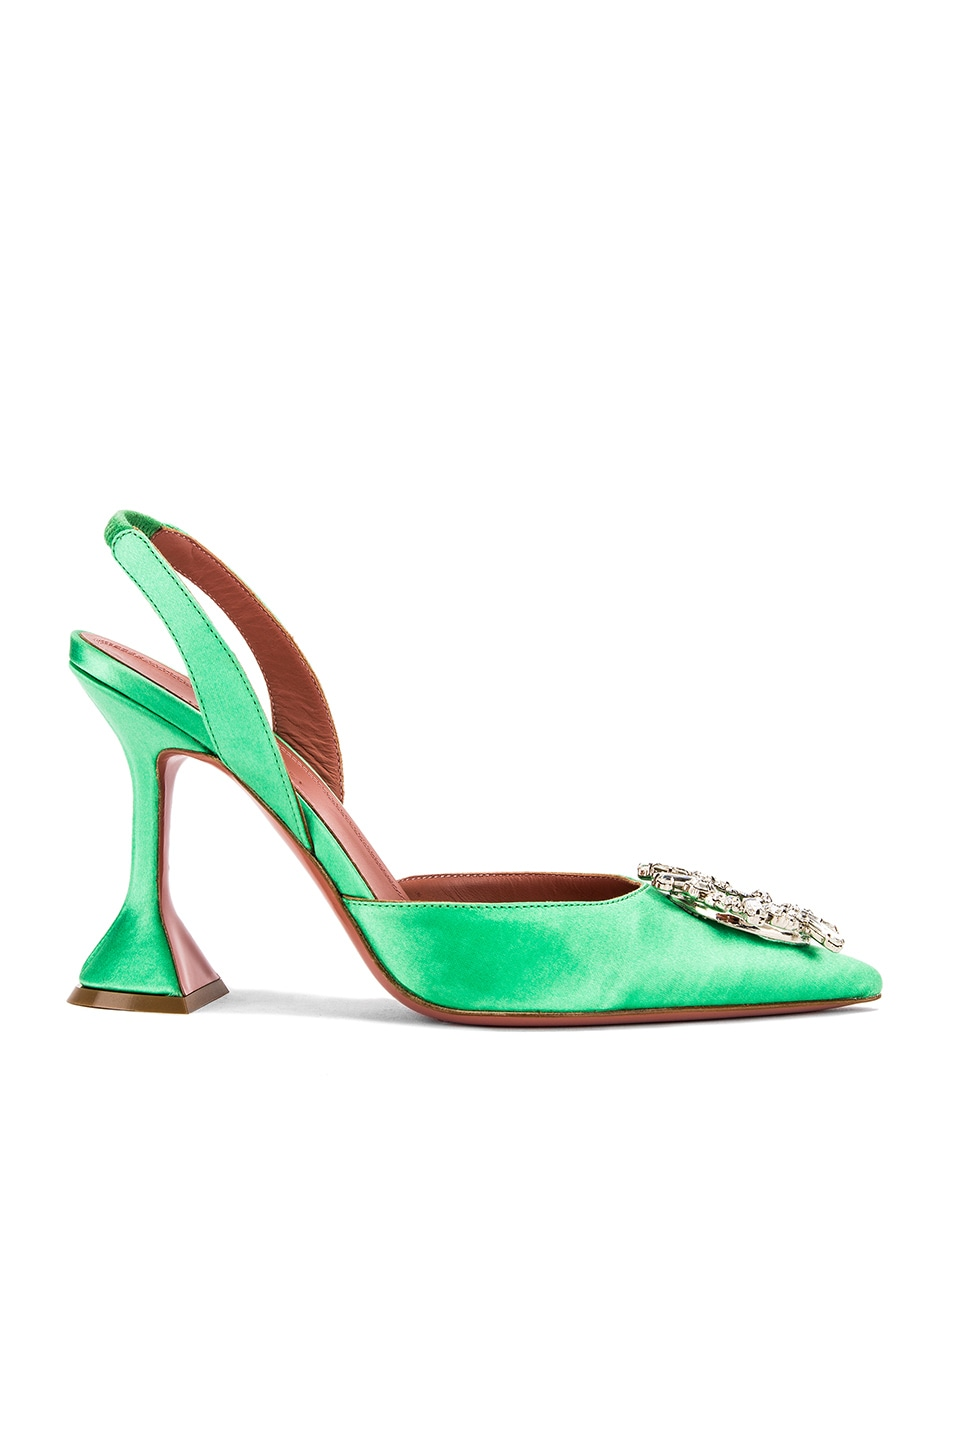 Image 1 of AMINA MUADDI Begum Satin Slingback in Aqua Green